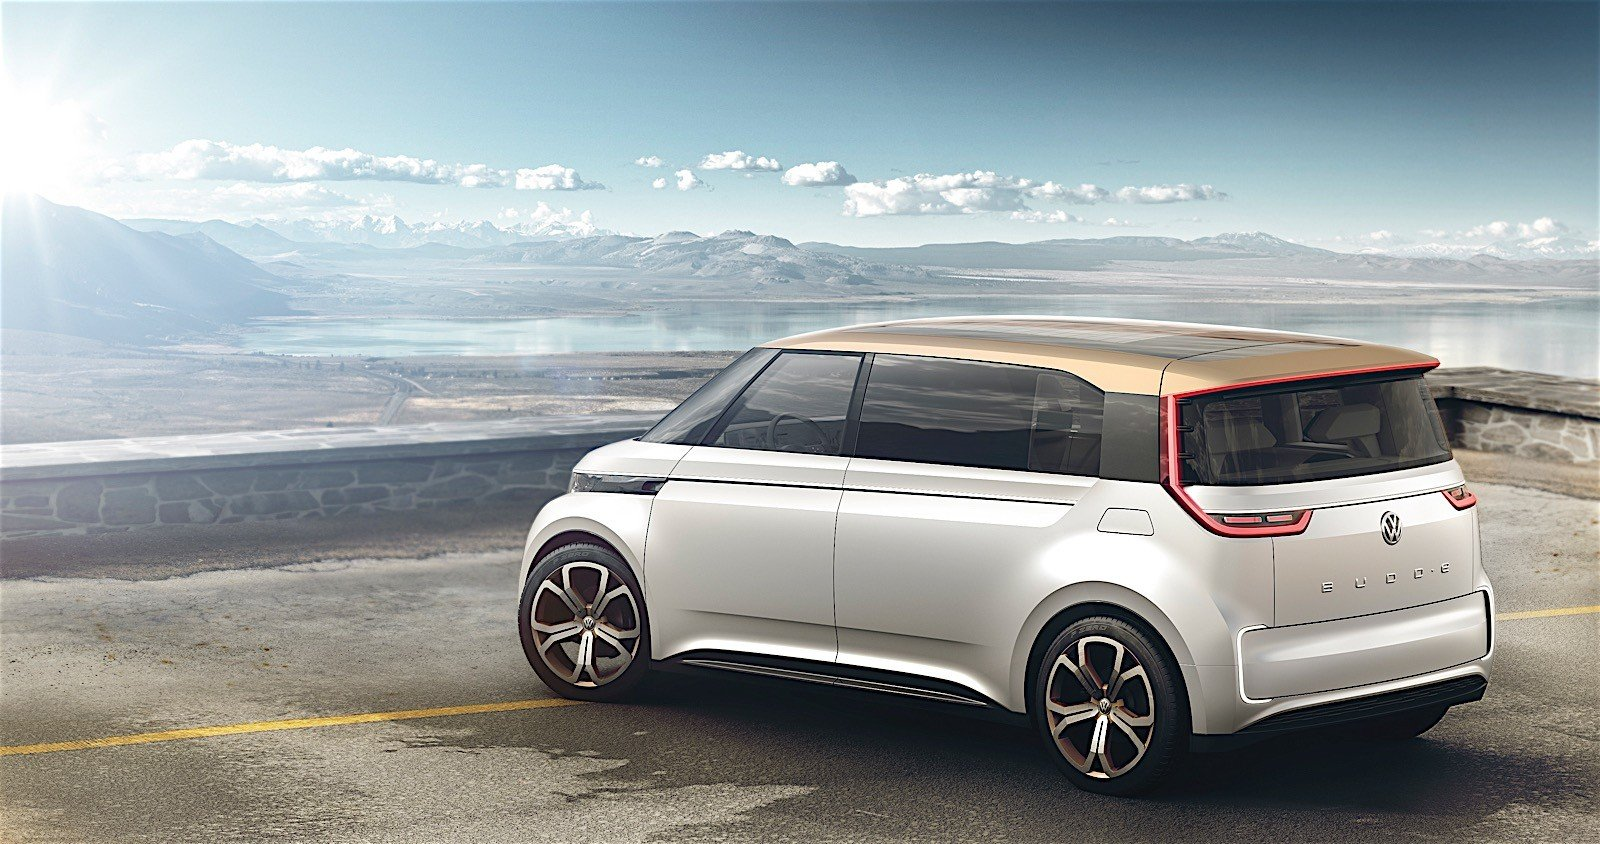 vw_budee_concept_ces2016